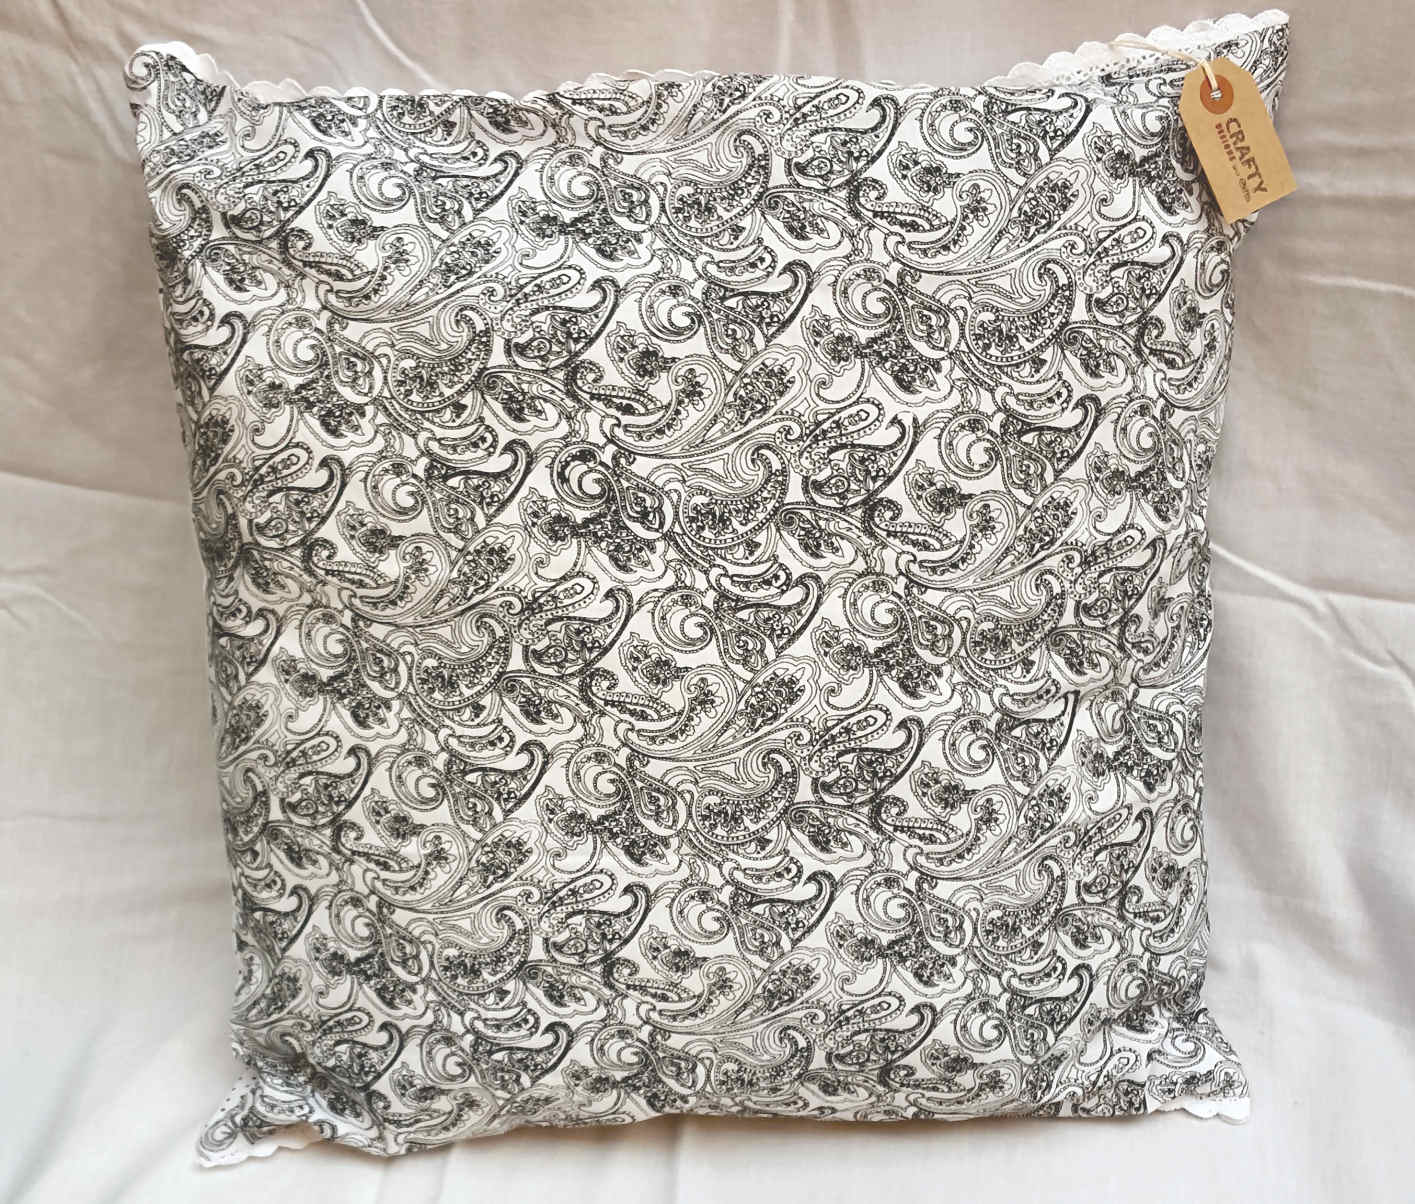 black pattern spot design cushion on white with buttons handmade soft furnishings shops. Black Bedroom Furniture Sets. Home Design Ideas